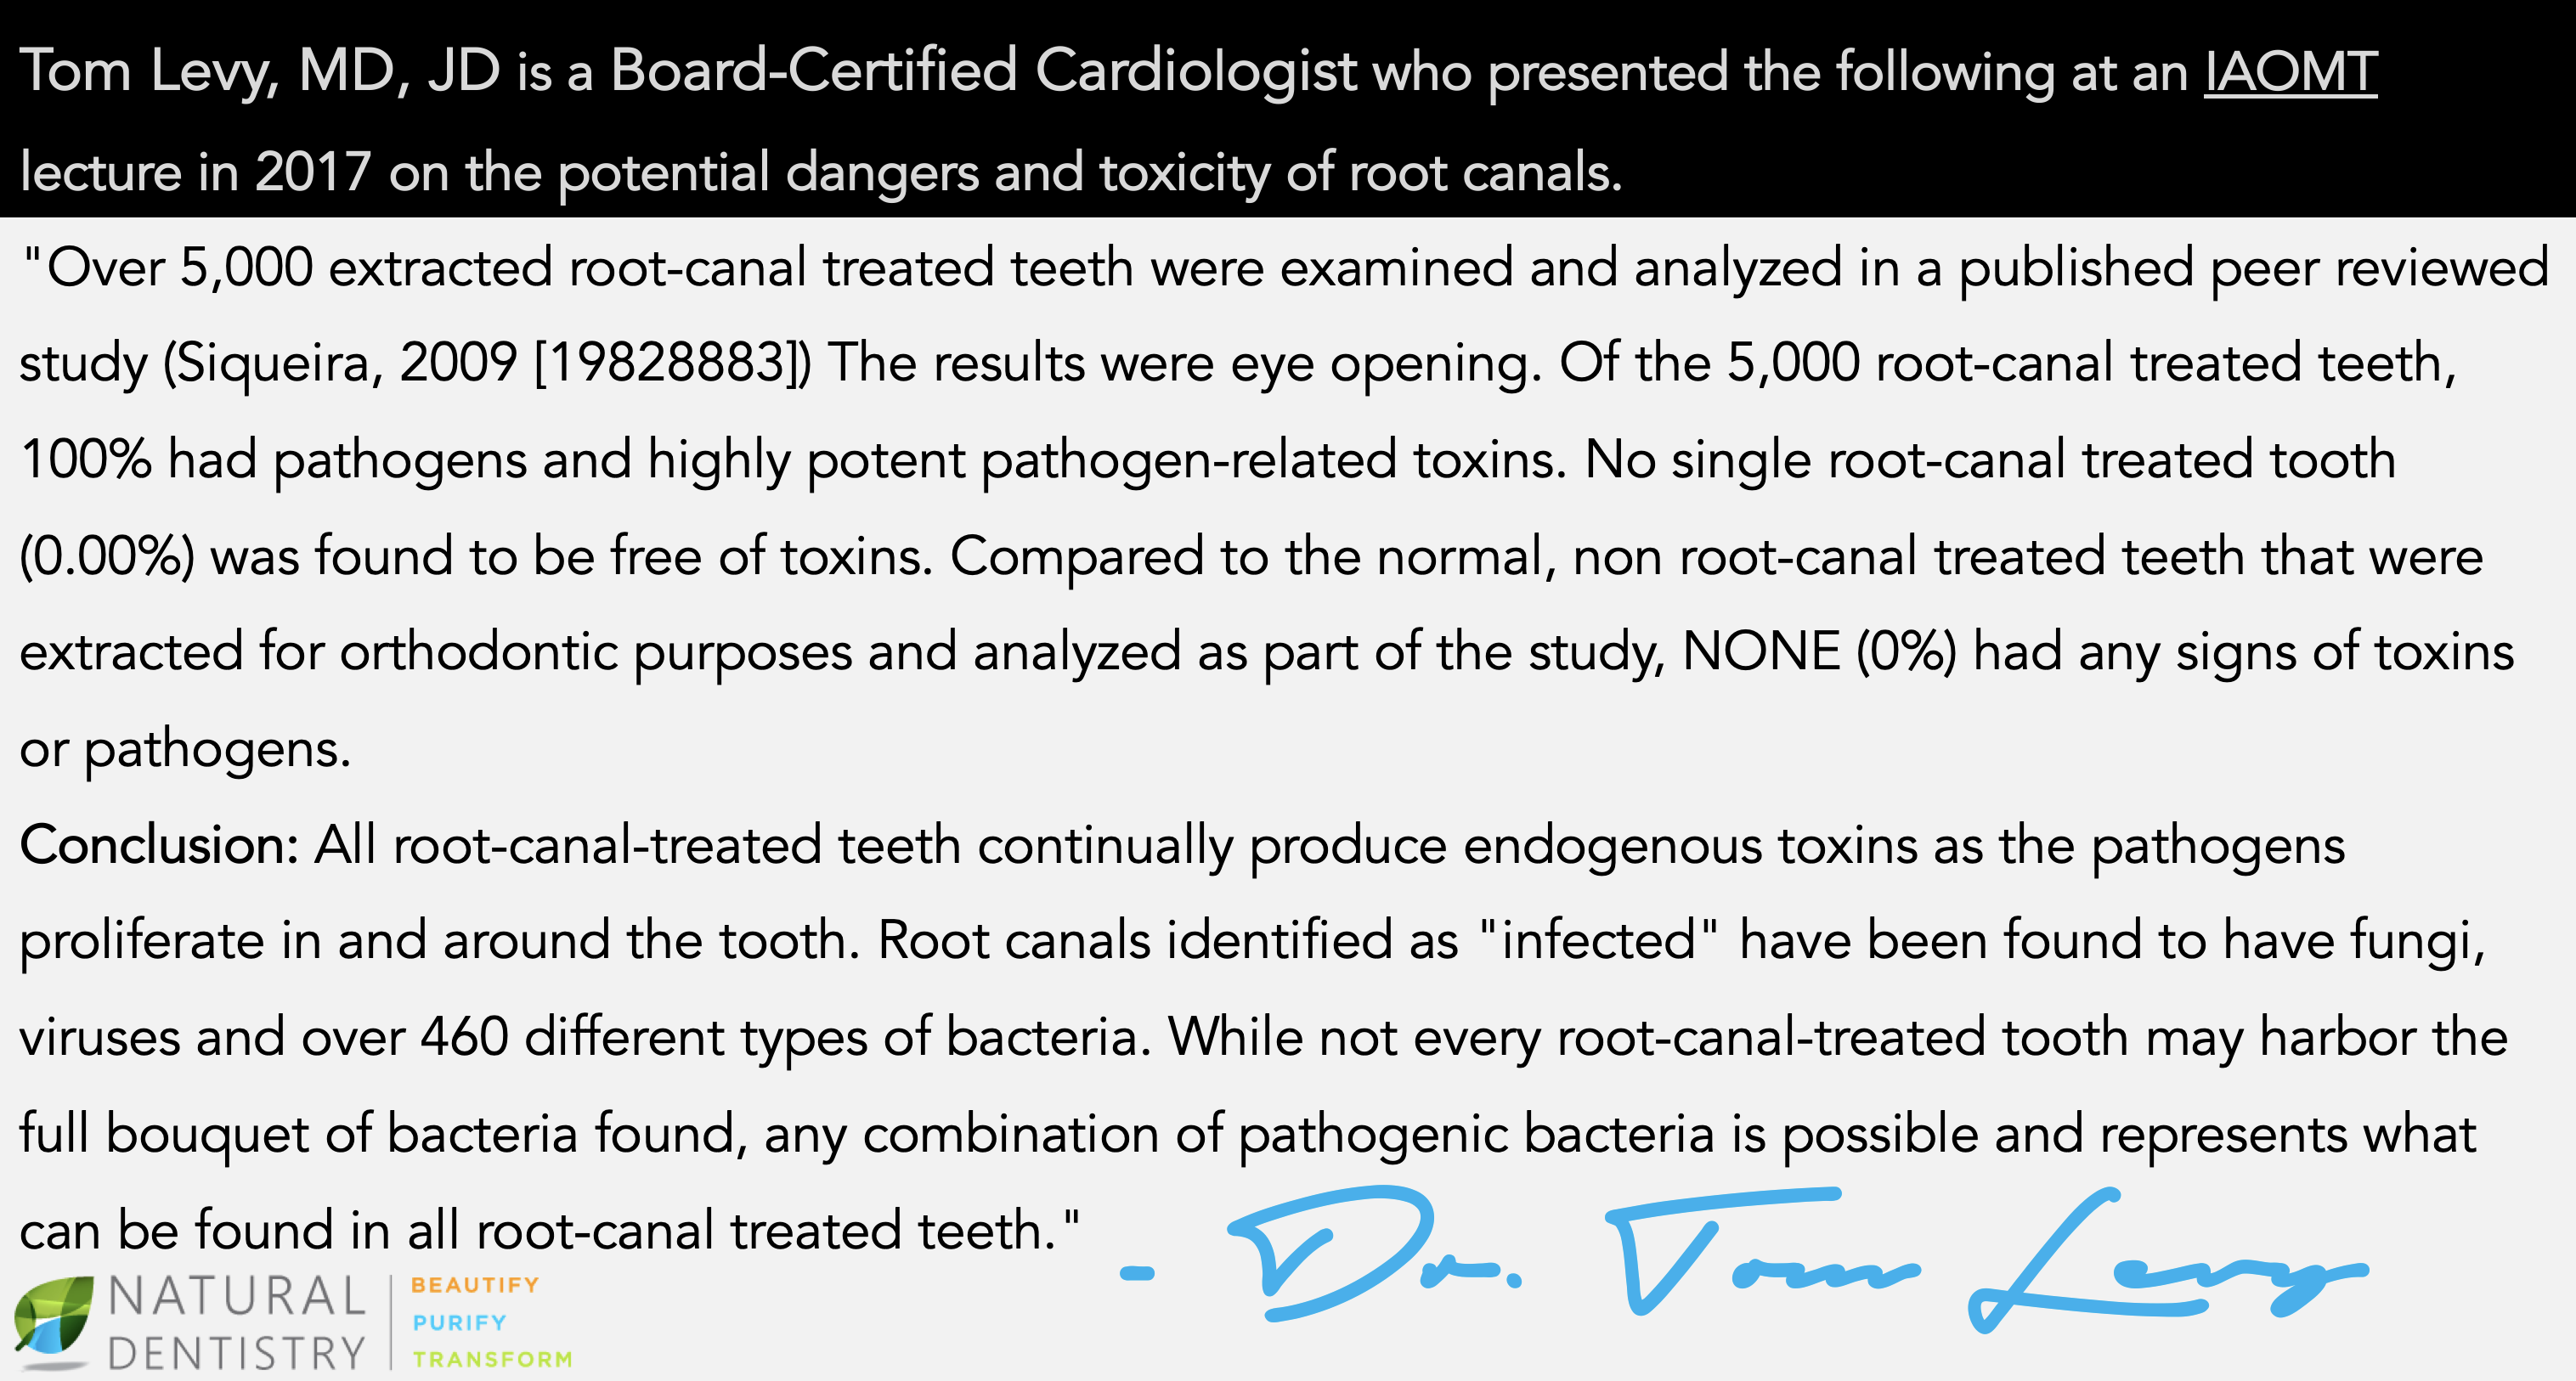 Root Canal Dangers Dr. Tom Levy Biological Dentist CT NY NJ RI Natural Dentistry